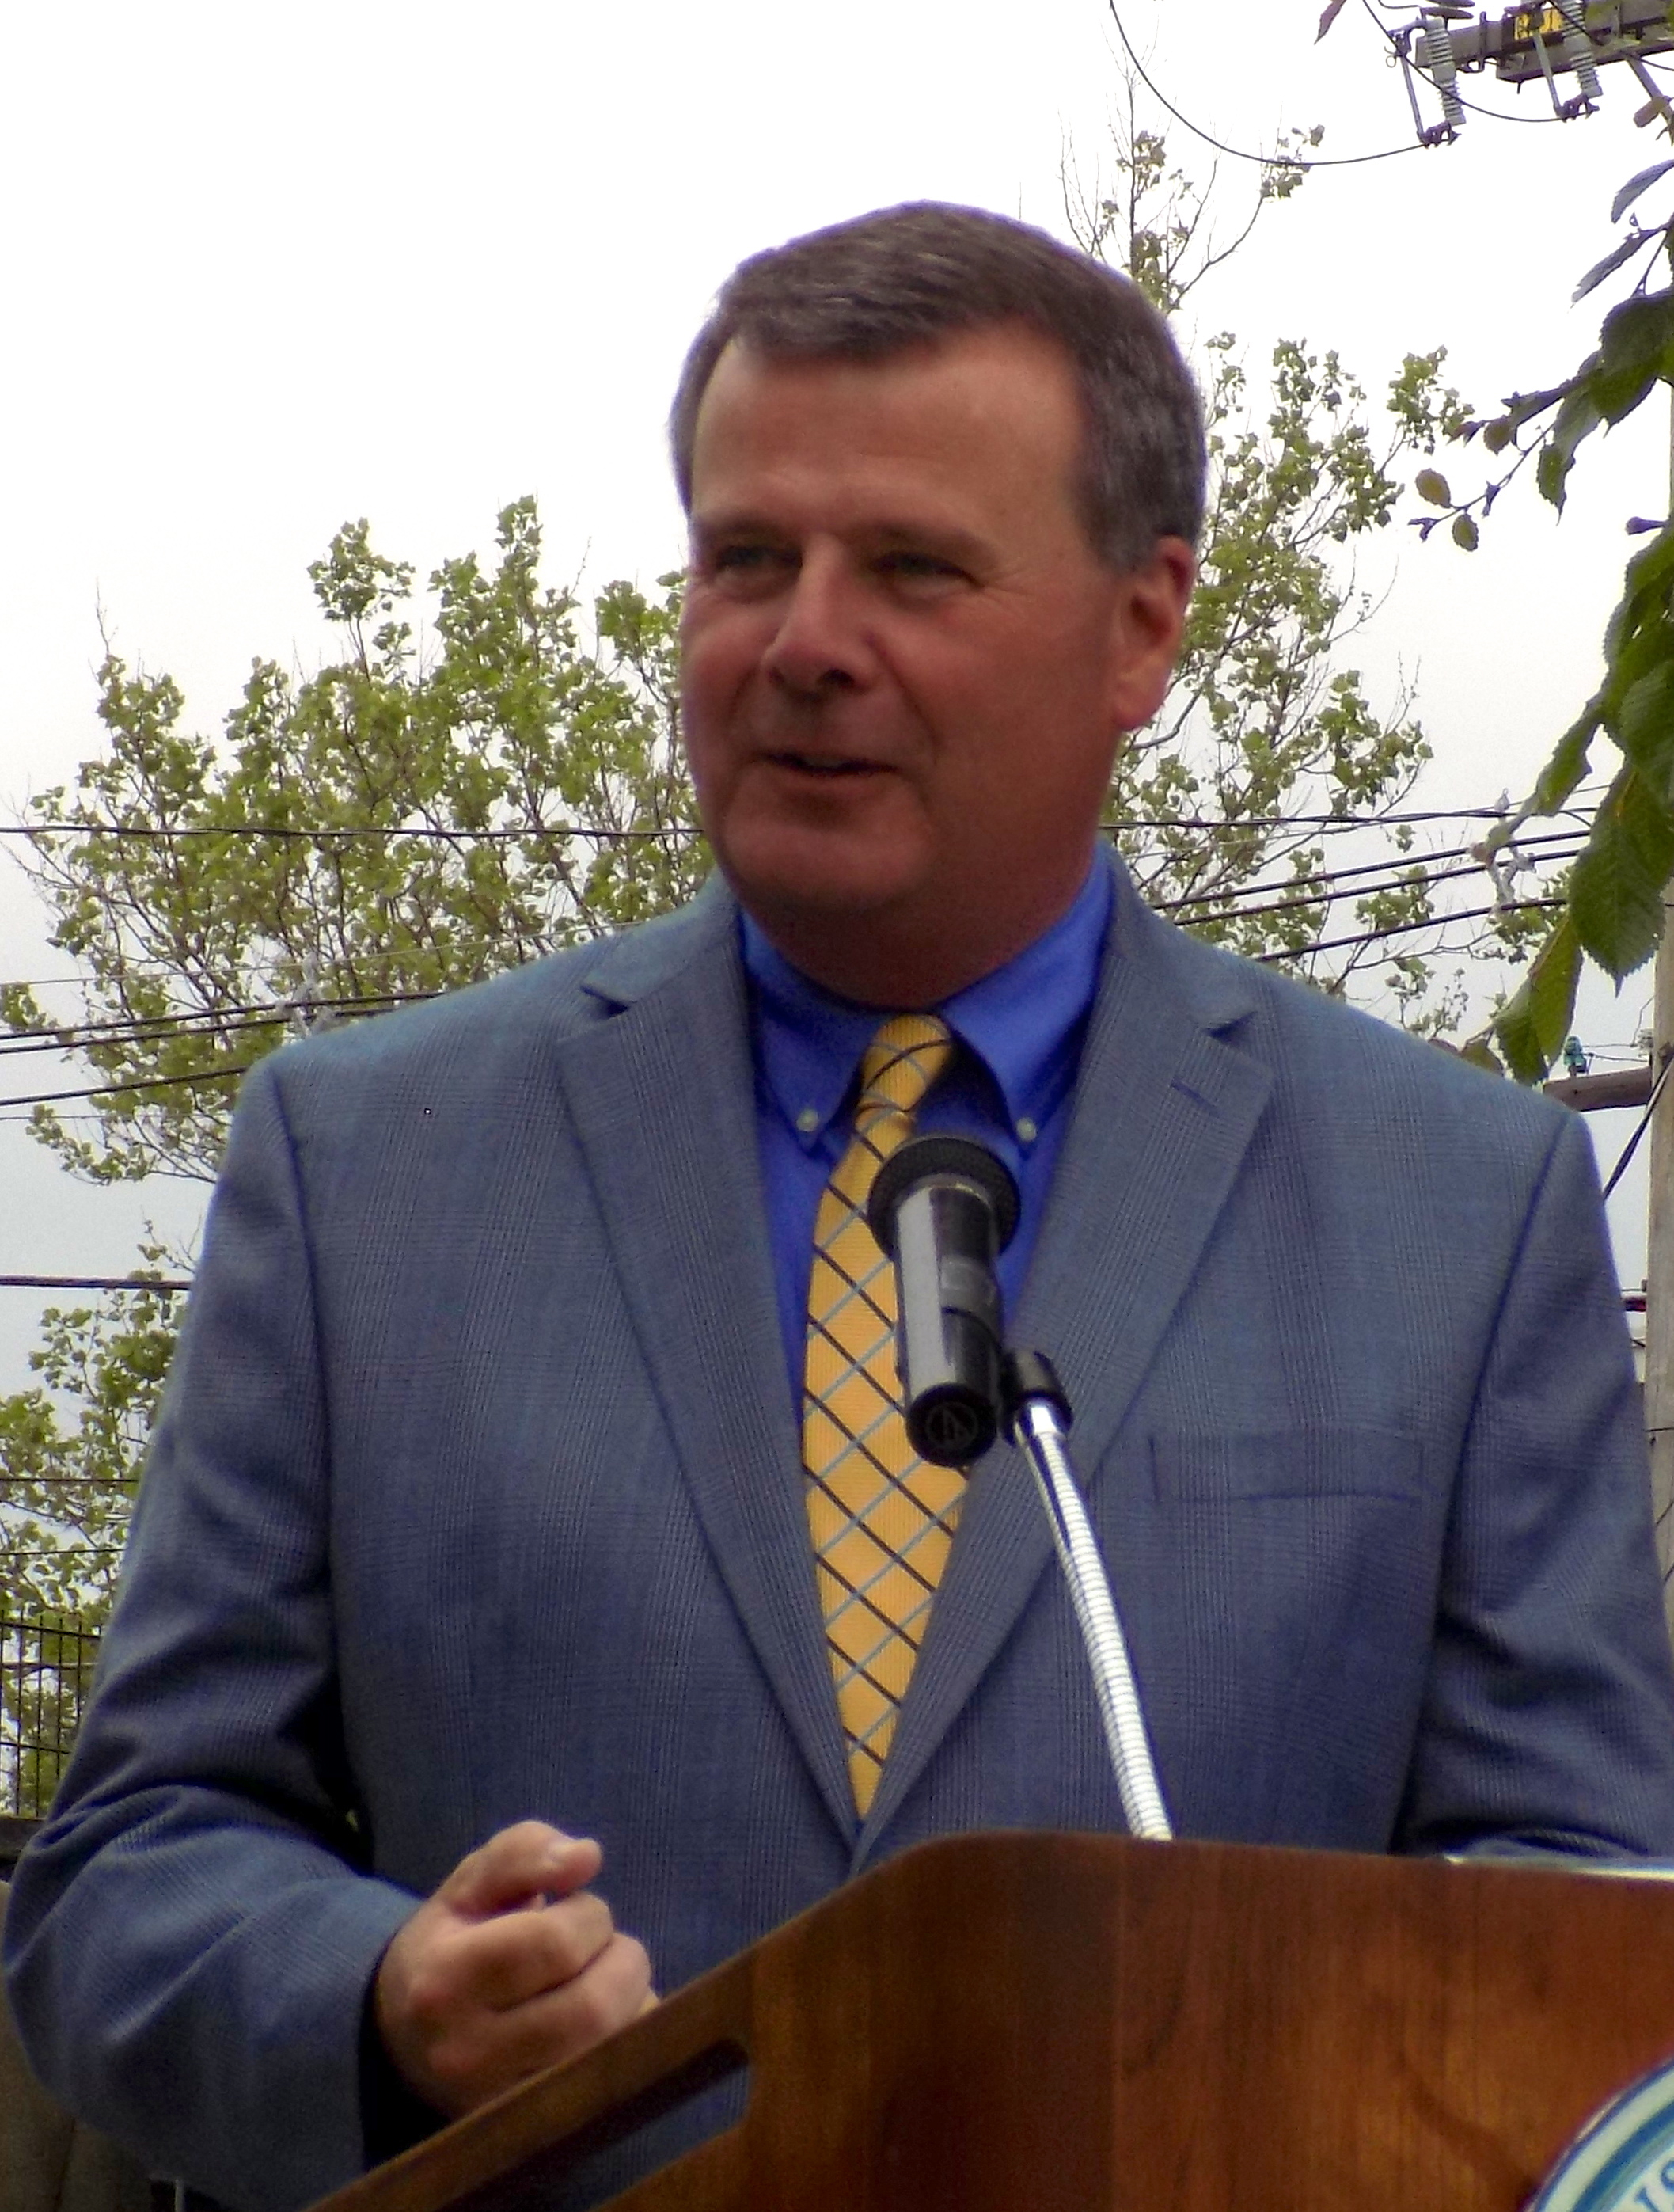 State Rep. Thomas Walsh was on hand to help present two state grants to the city totaling $467,616 for Municipal Vulnerability Preparedness at East End Peabody Veterans Memorial Park on June 1.